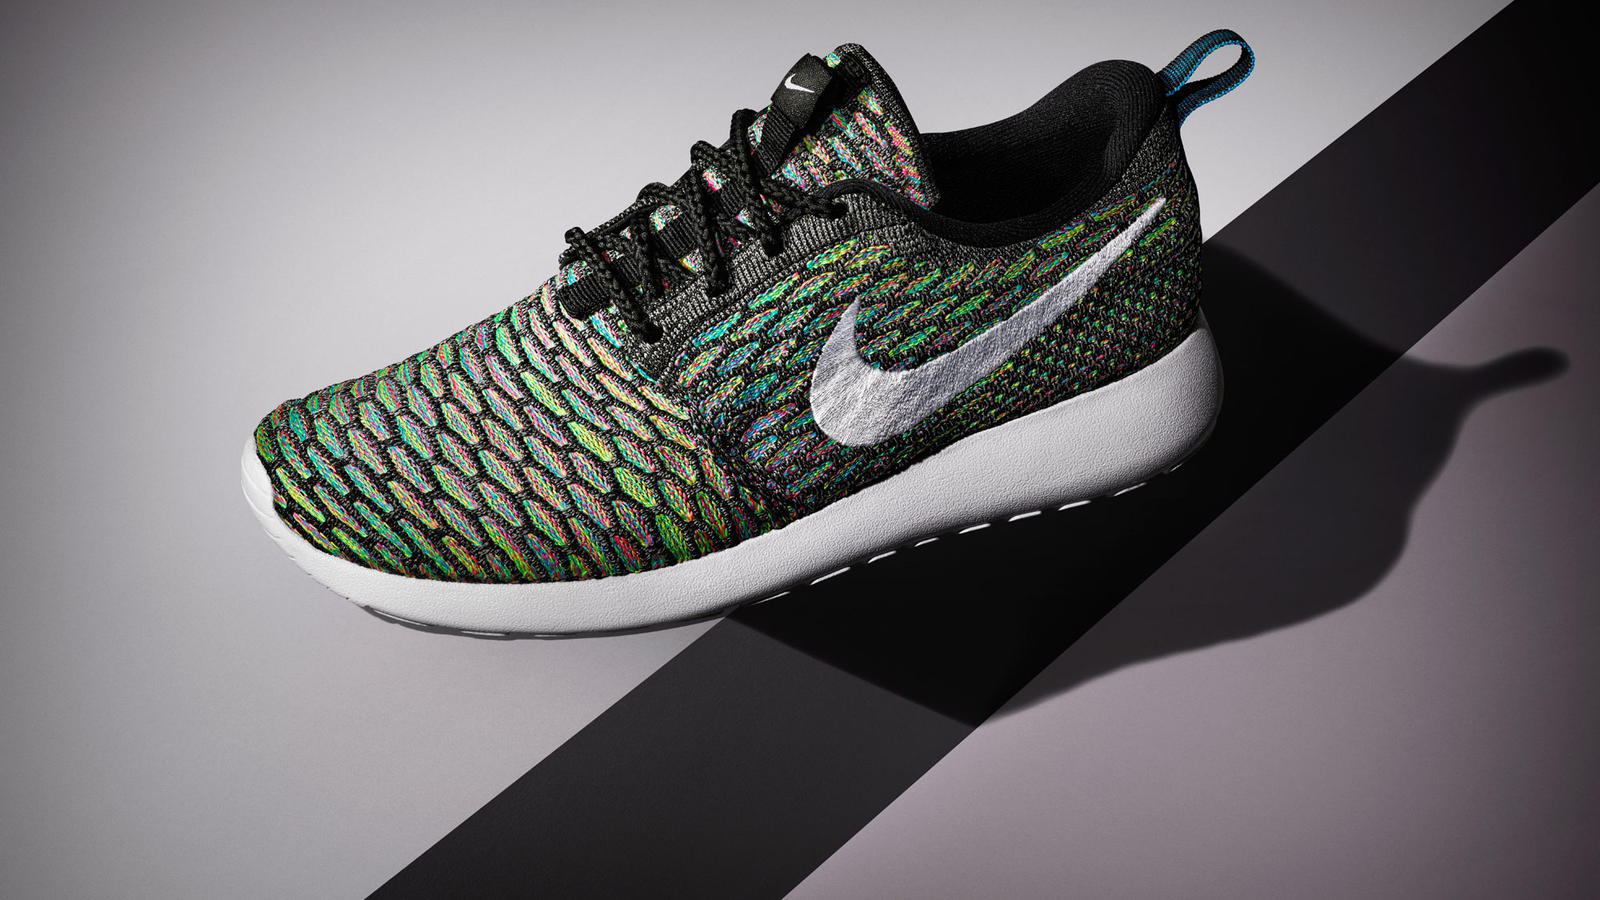 More With Less: The Nike Roshe Flyknit - Nike News